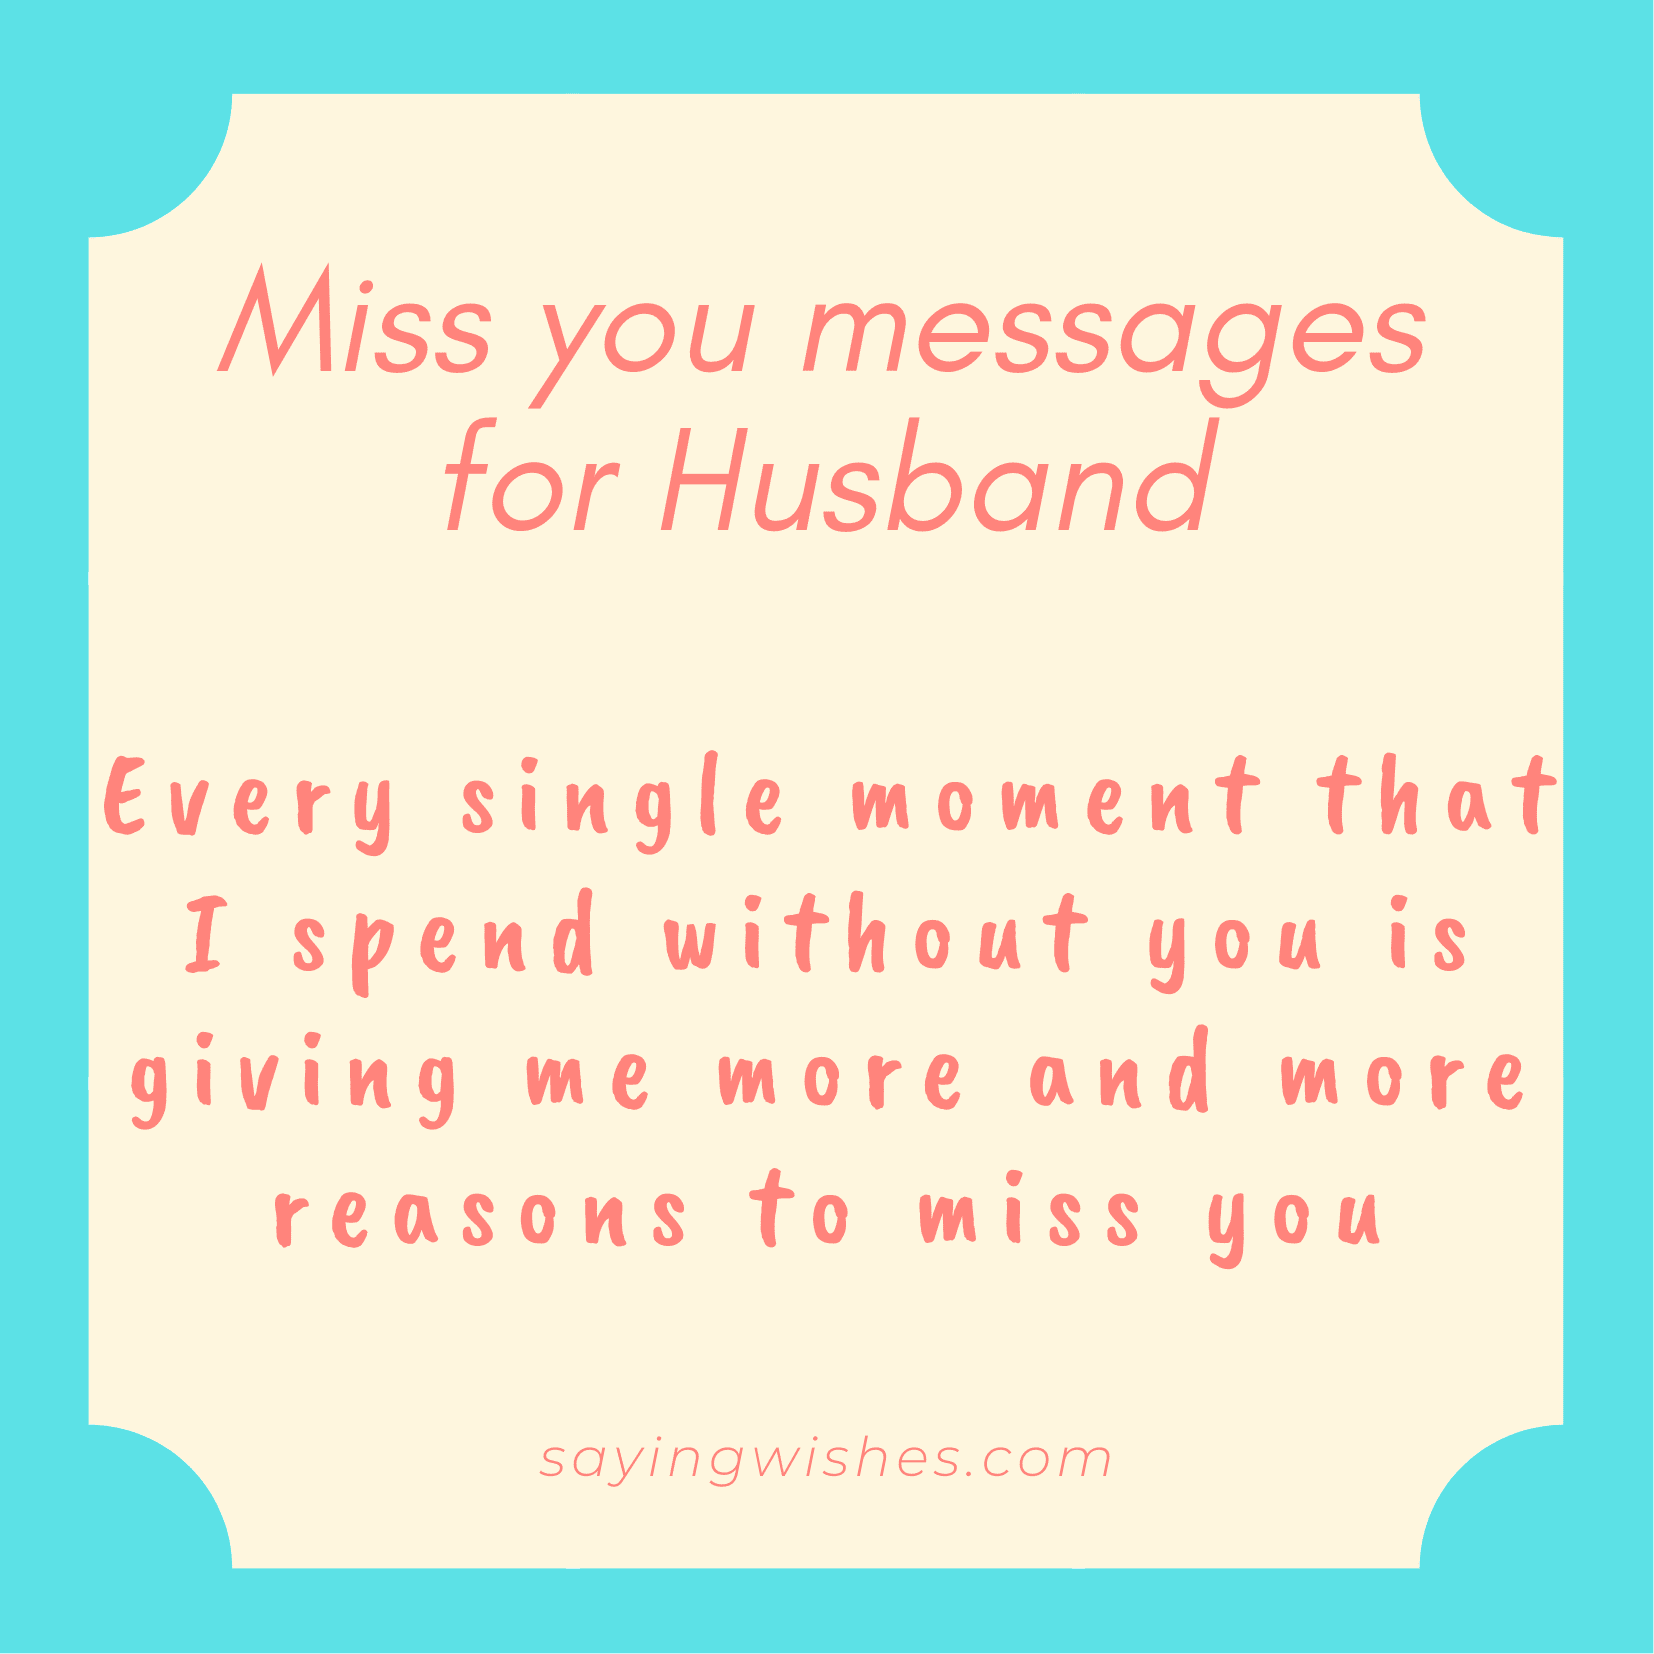 miss you so much messages for husband